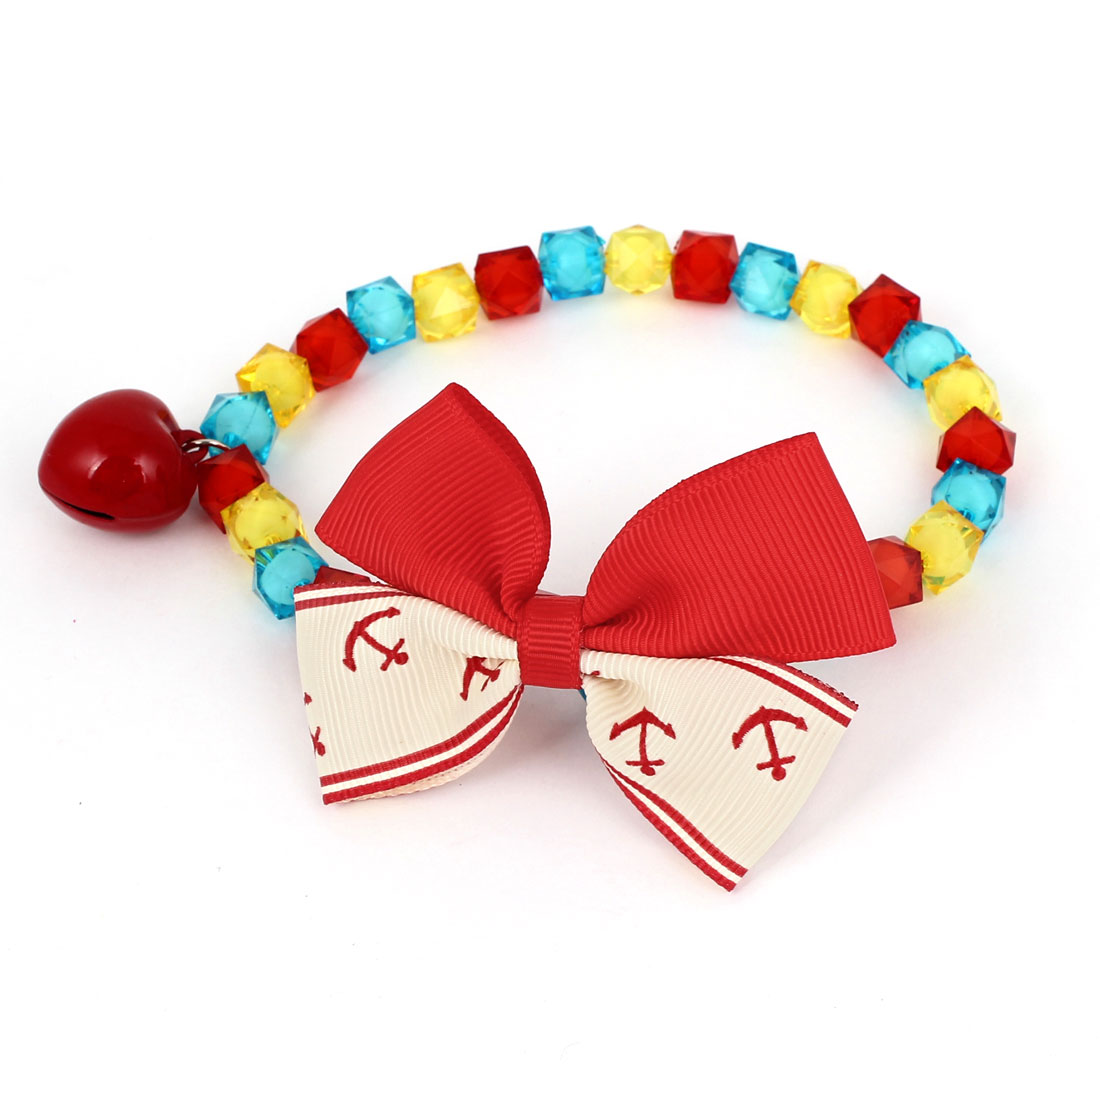 Metal Bell Pendant Bowtie Accent Pet Dog Plastic Faceted Beads Collar Necklace Assorted Color S